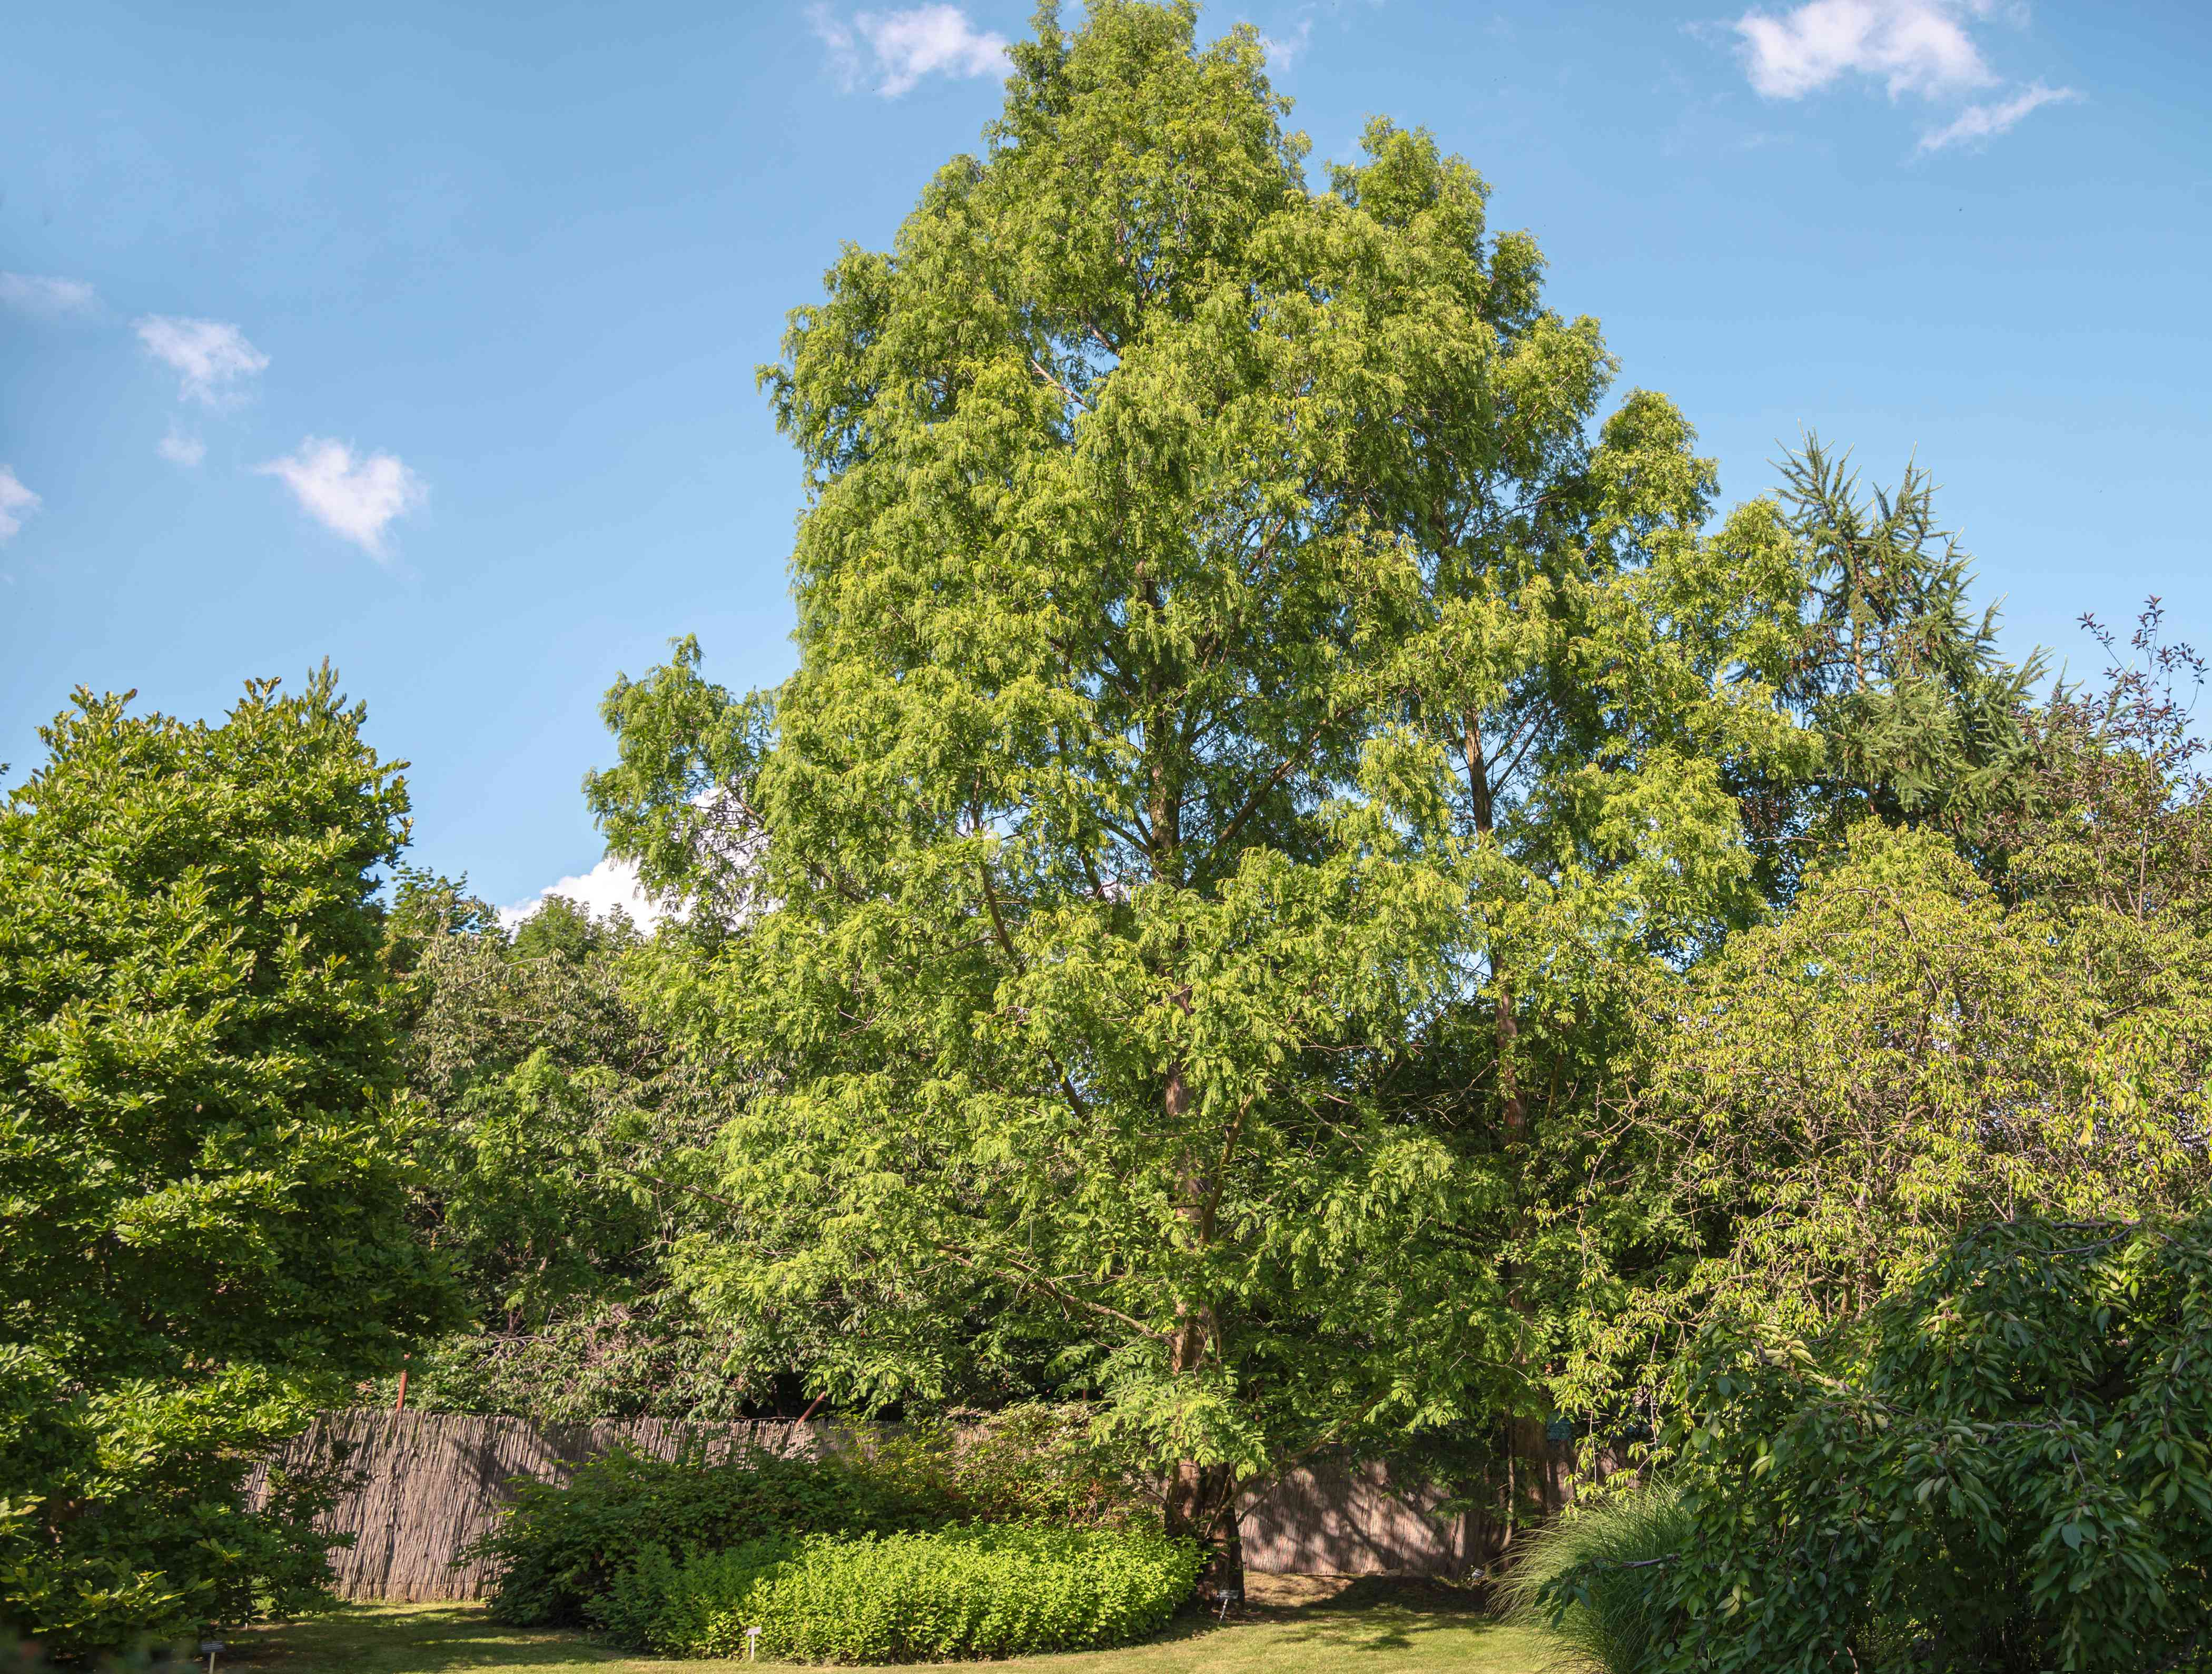 Dawn redwood tree with bright green feathery needles on branches in backyard